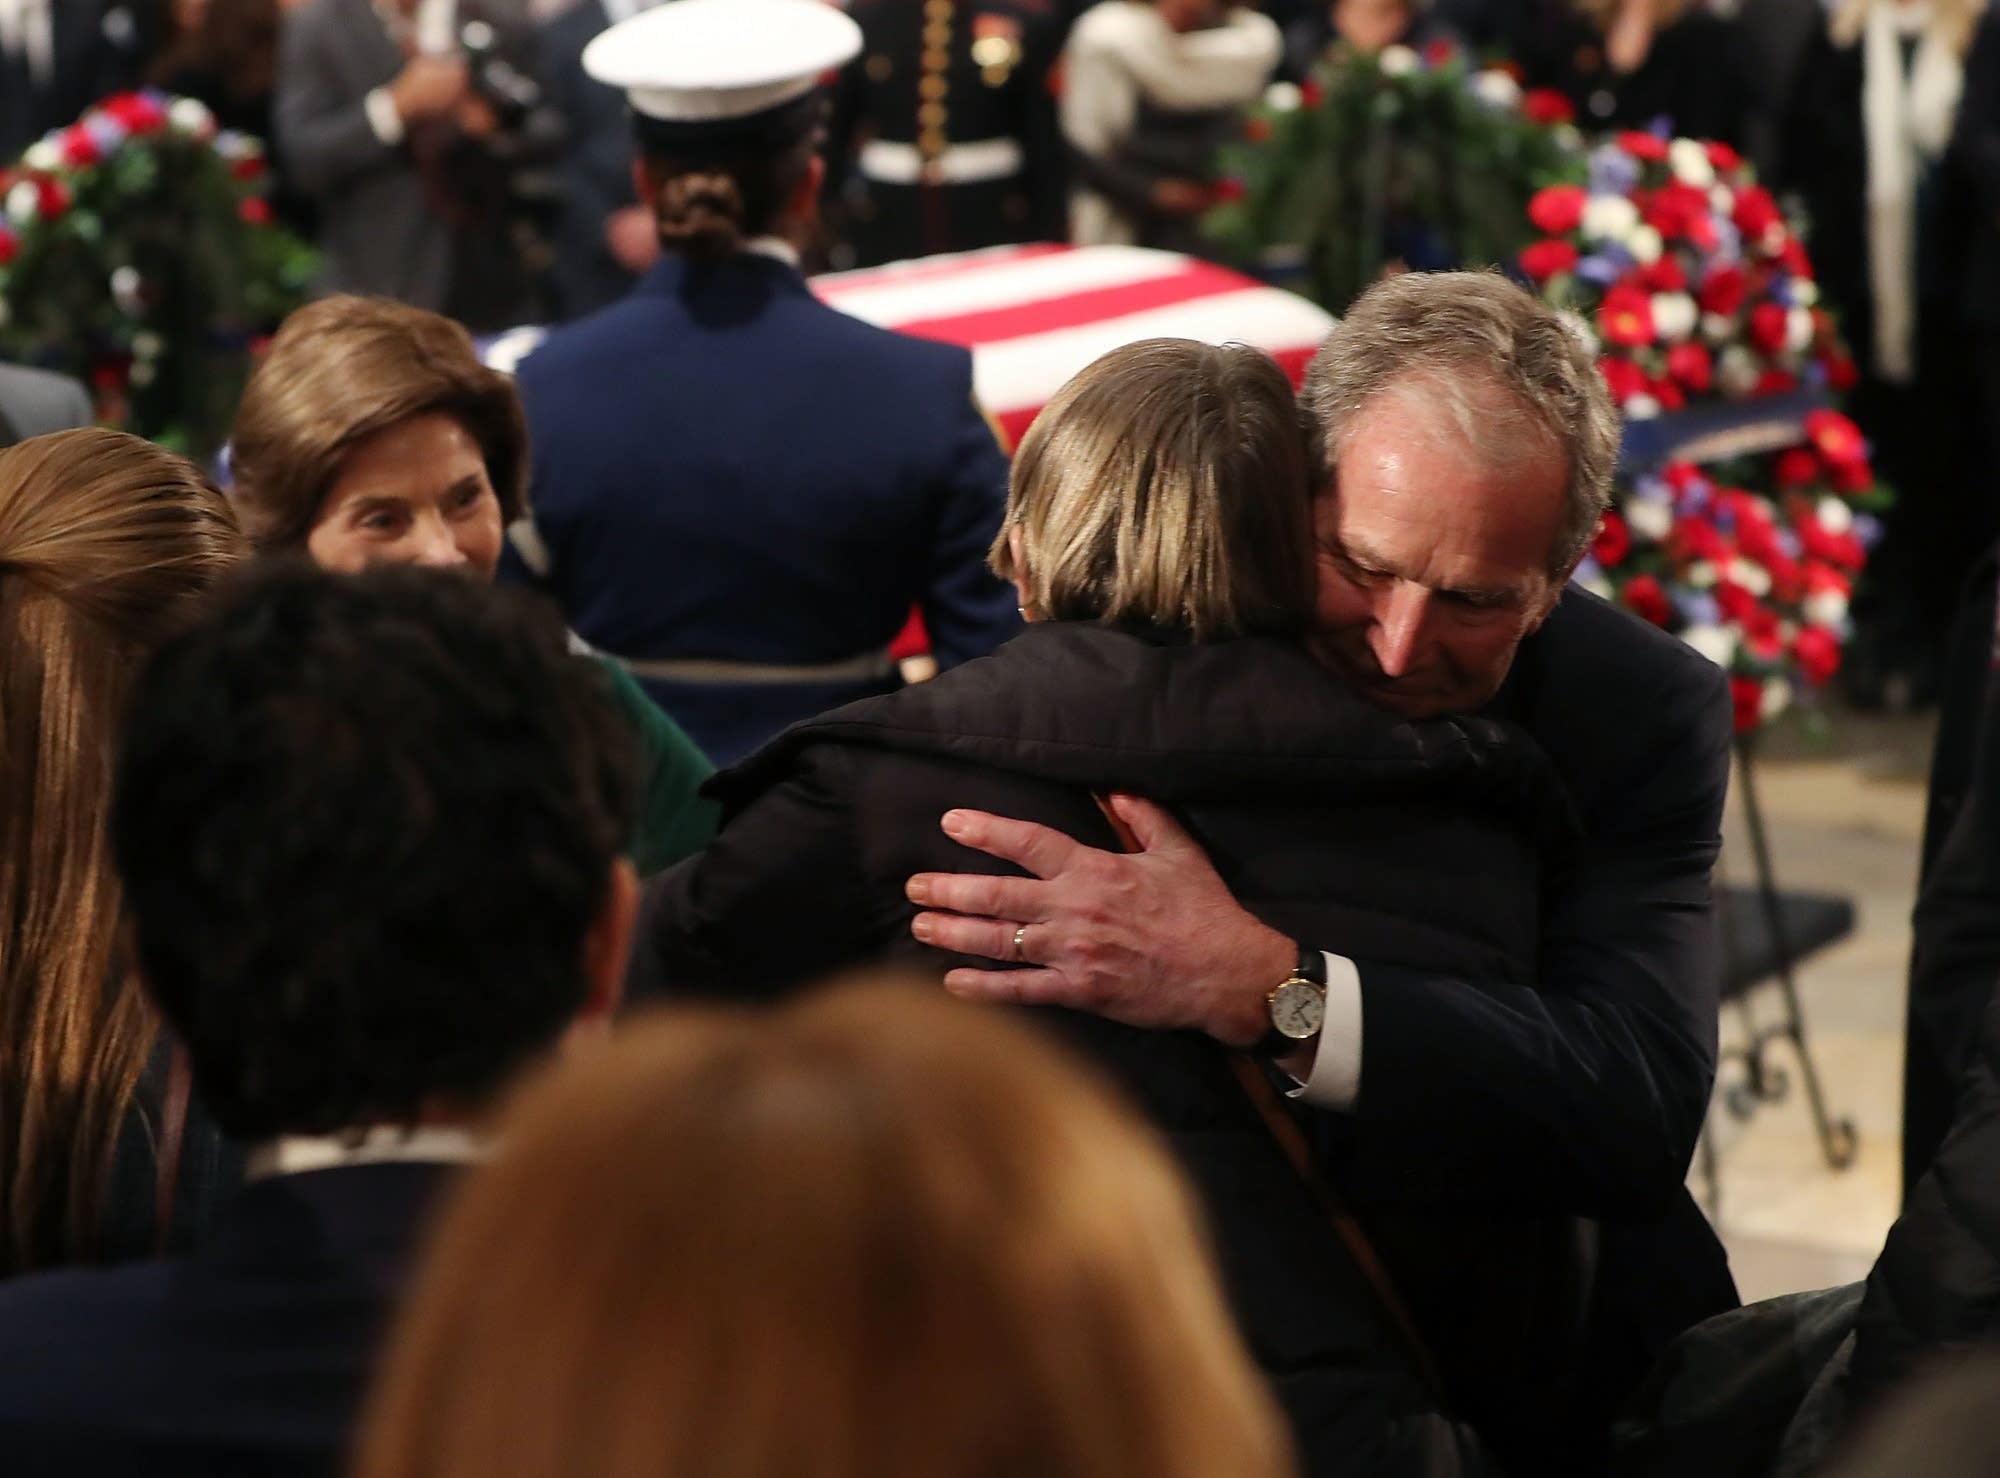 Former President George W. Bush and his wife Laura Bush greet mourners.